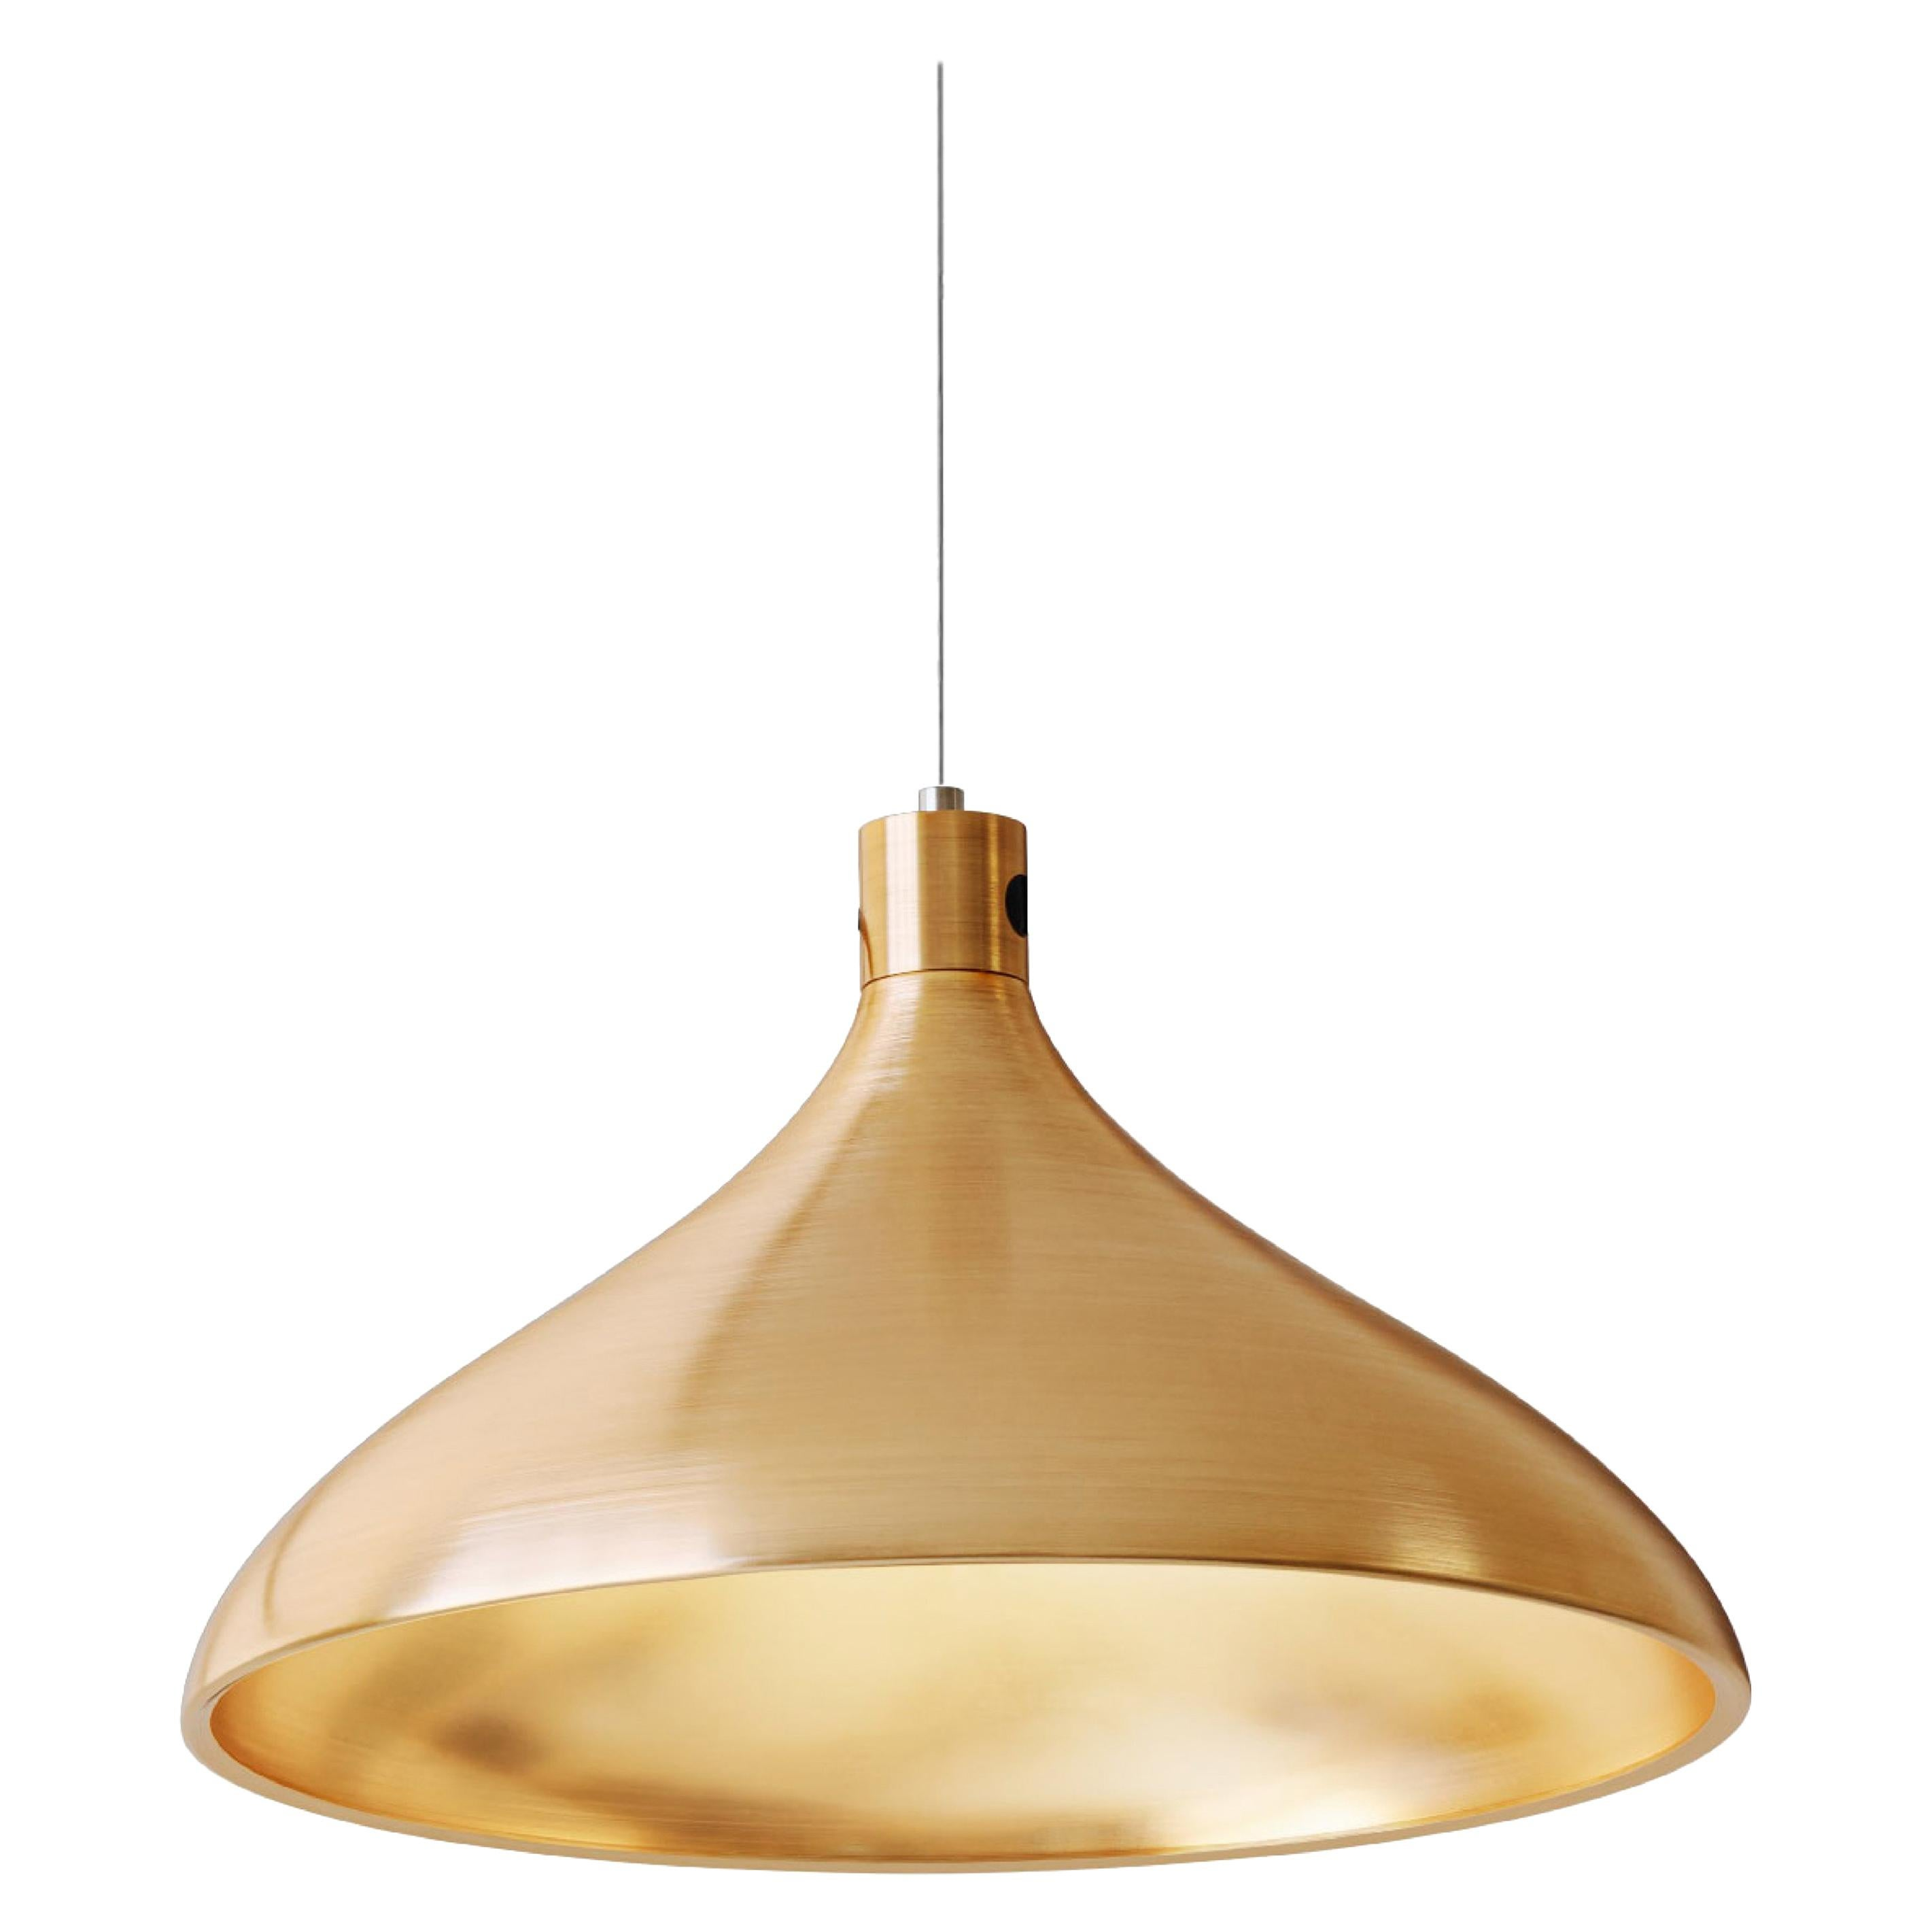 Wide Swell String Pendant Light in Brass by Pablo Designs